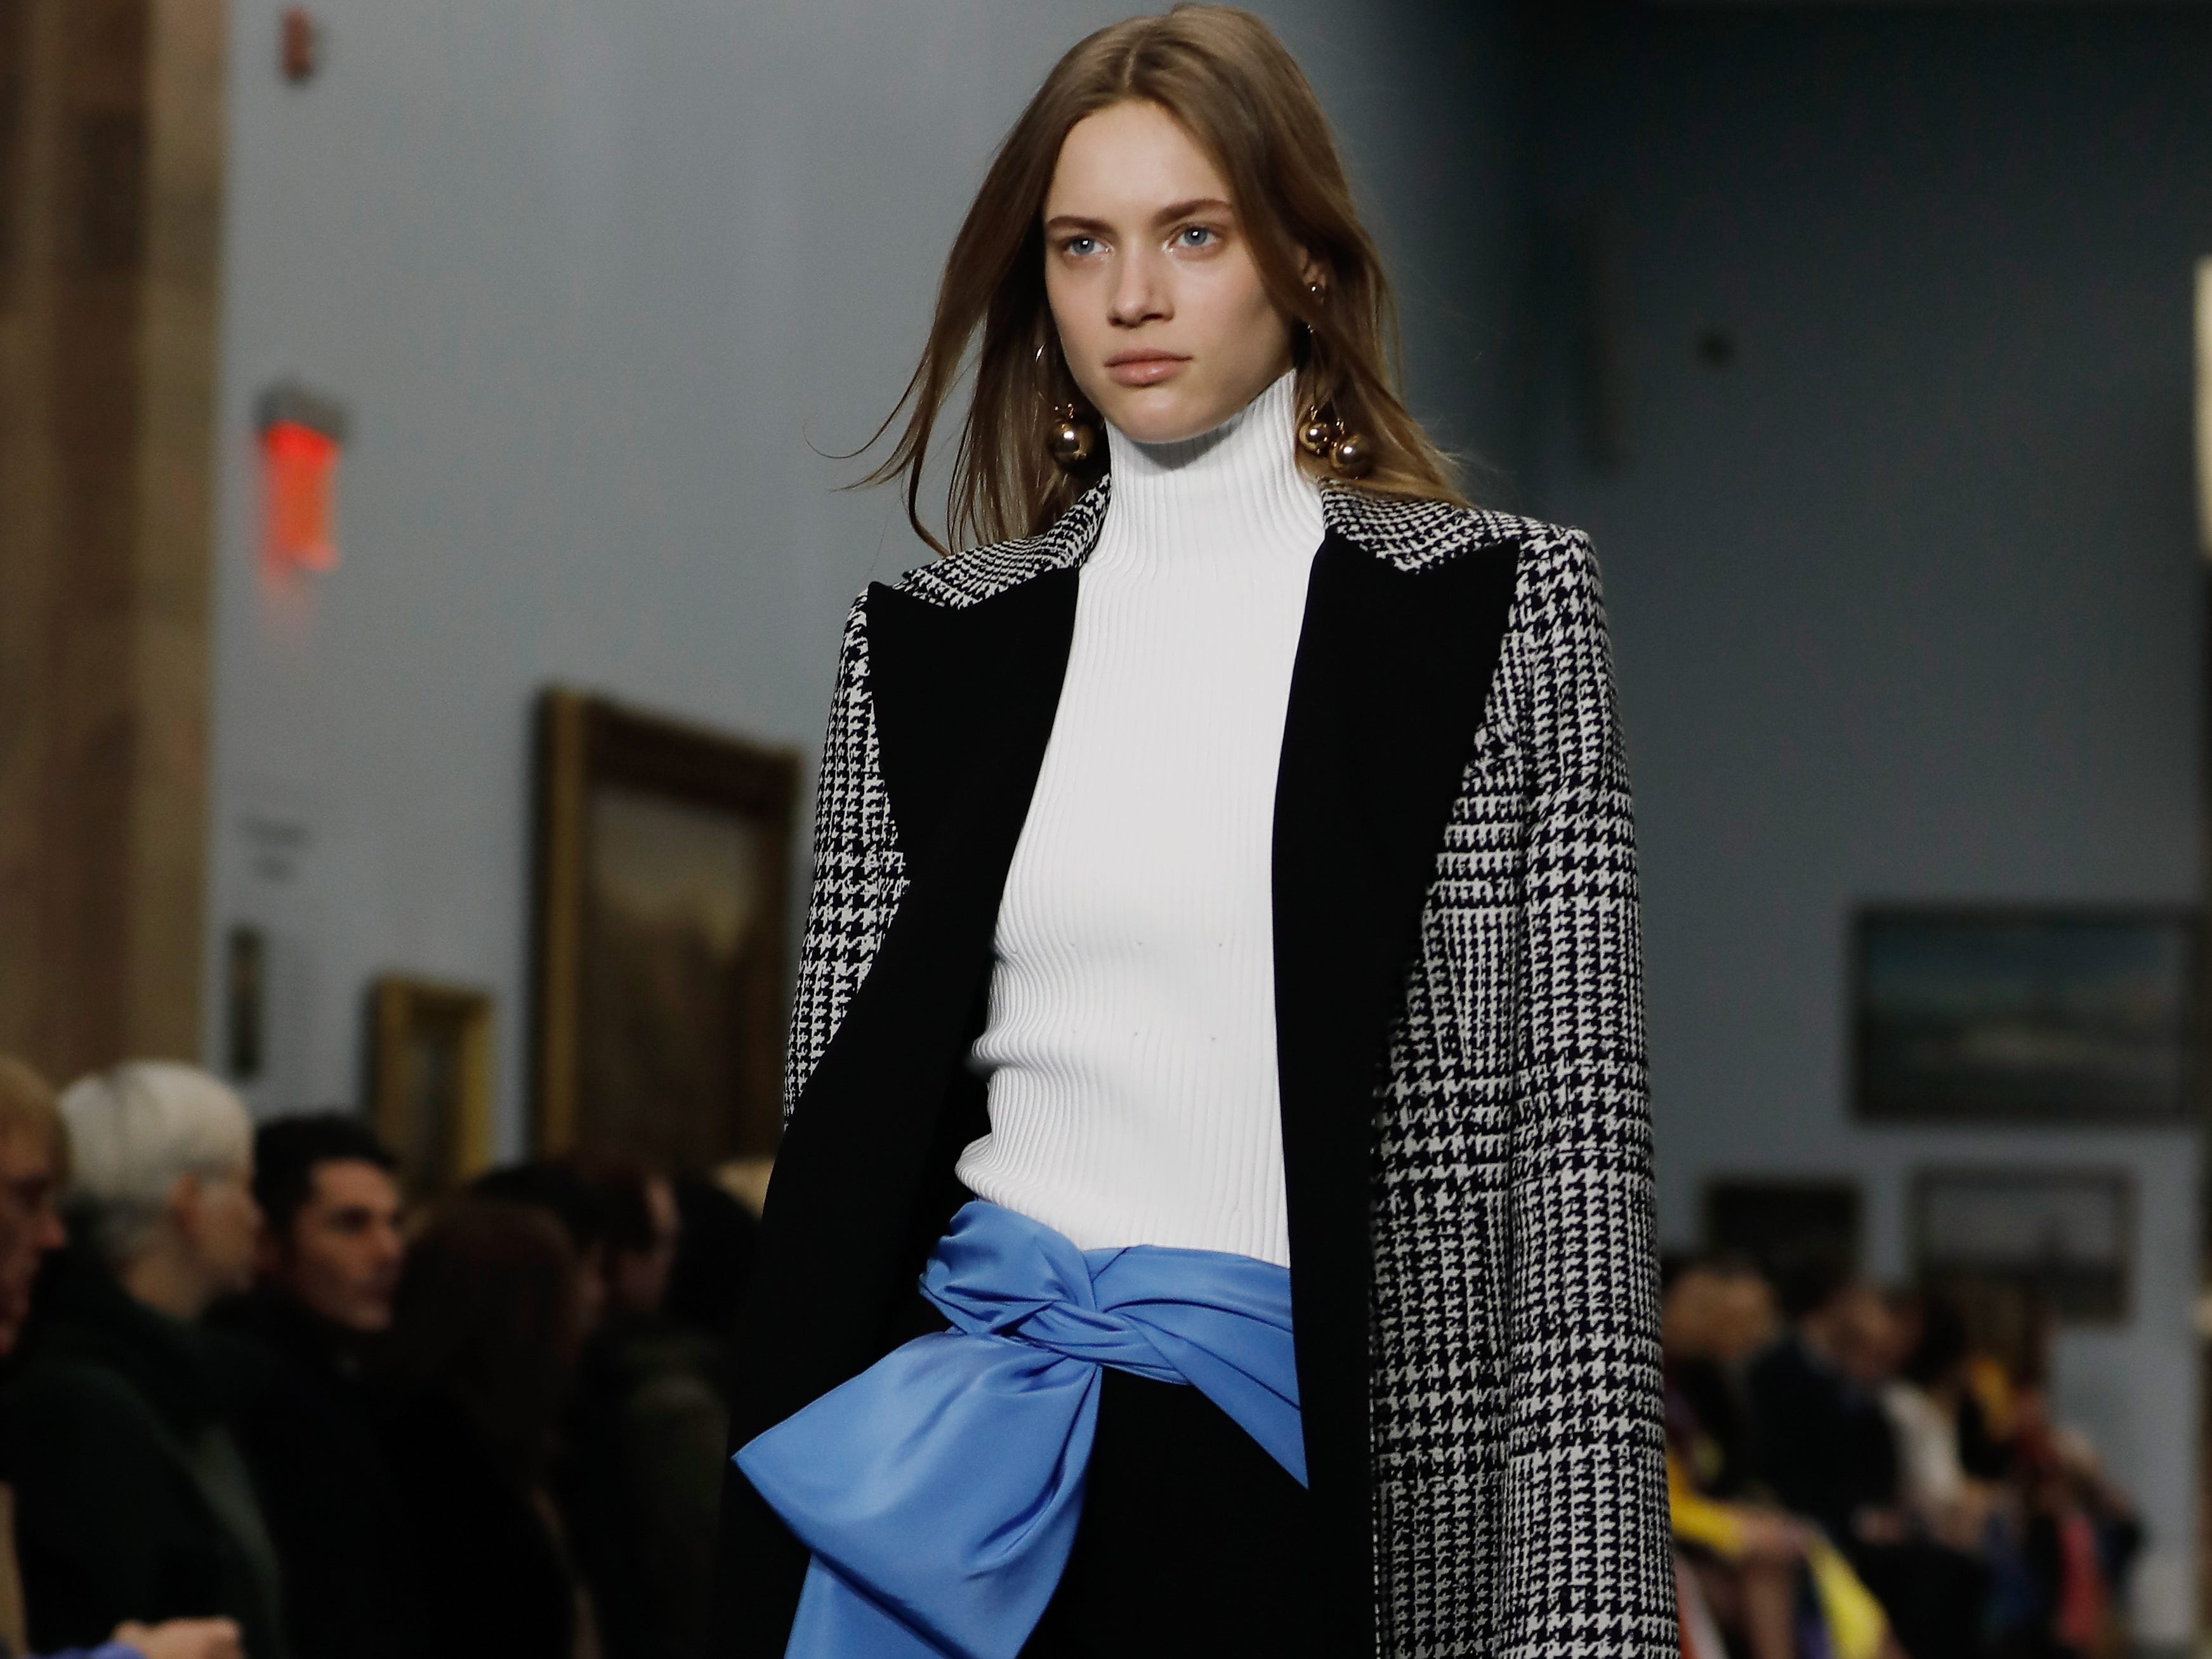 Herrera's use of color was more subtle in this look. A cornflower-blue silk bow broke up a white turtleneck and black trousers worn under a houndstooth coat with black lapels.